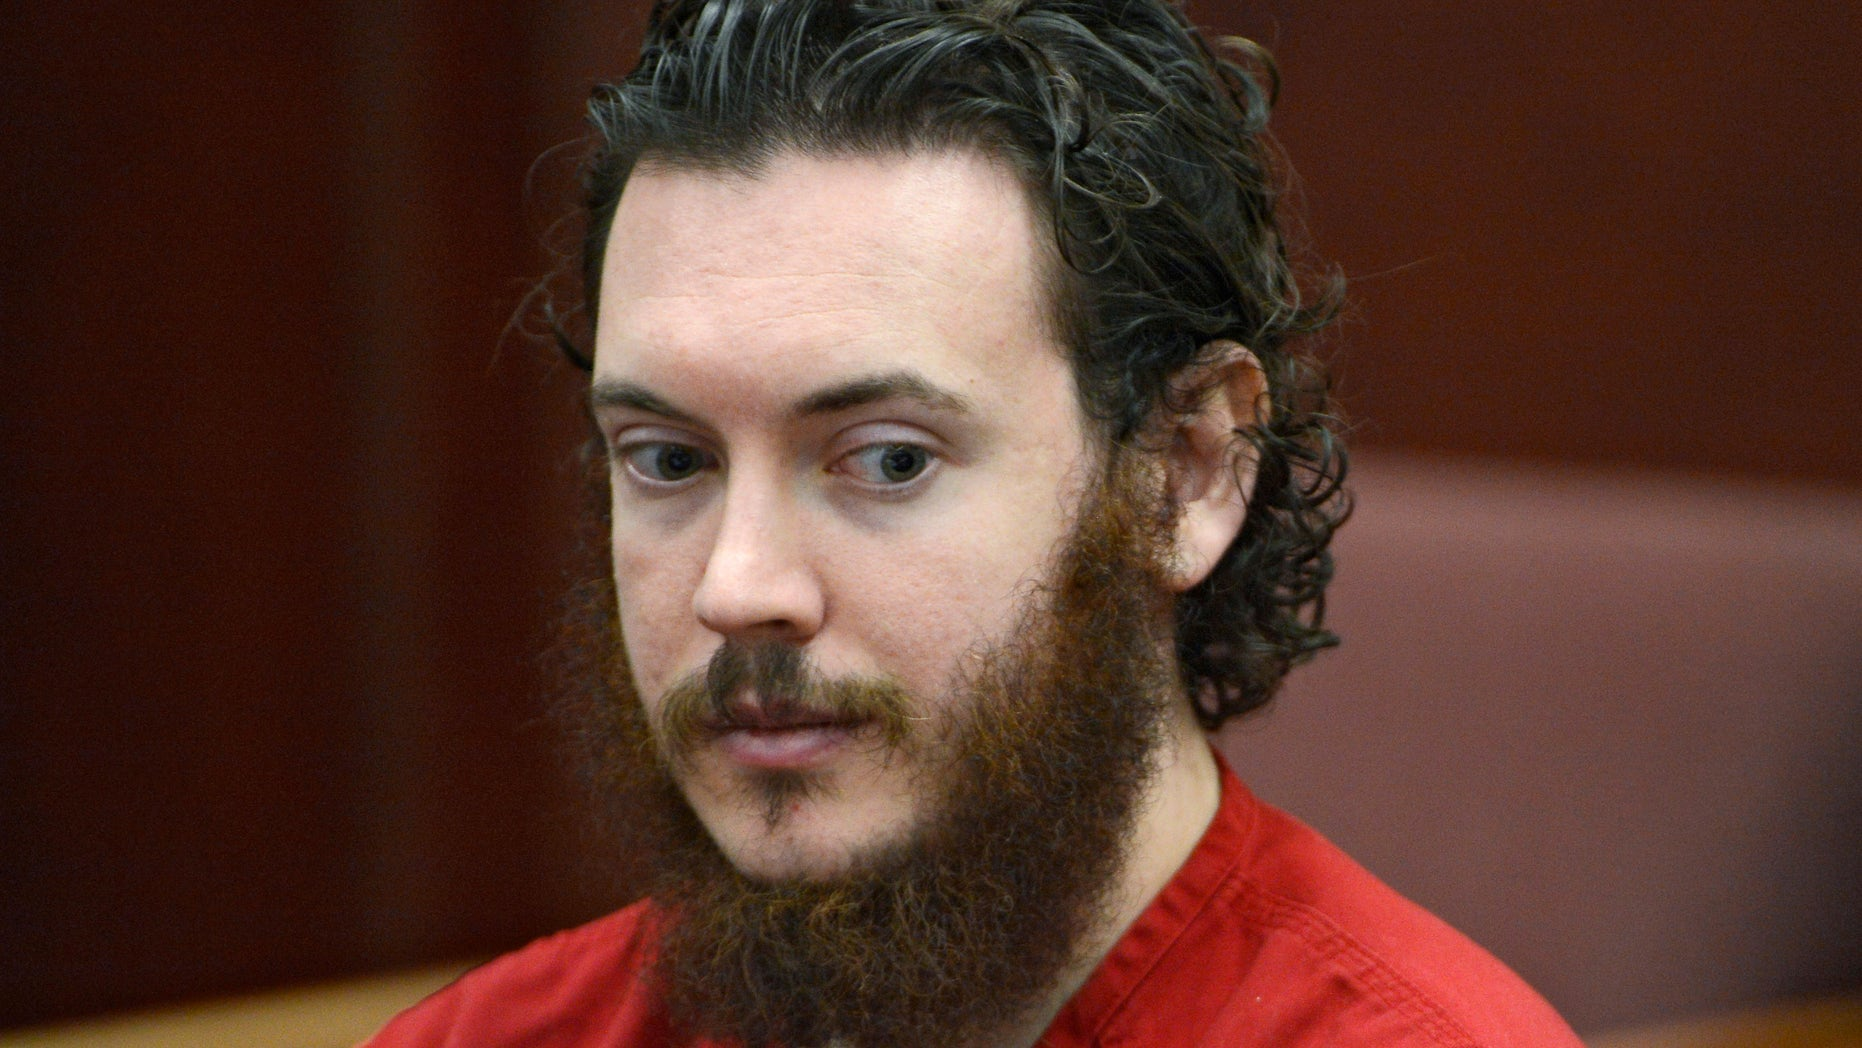 FILE -This June 4, 2013 file photo shows Aurora theater shooting suspect James Holmes in court in Centennial, Colo. On Tuesday, Oct. 15, 2013, Holmes' lawyers will argue that the two hours that passed before he was read his Miranda rights violated his constitutional rights and that anything he told the arresting officers should be barred from his trial.  (AP Photo/The Denver Post, Andy Cross, Pool, File)